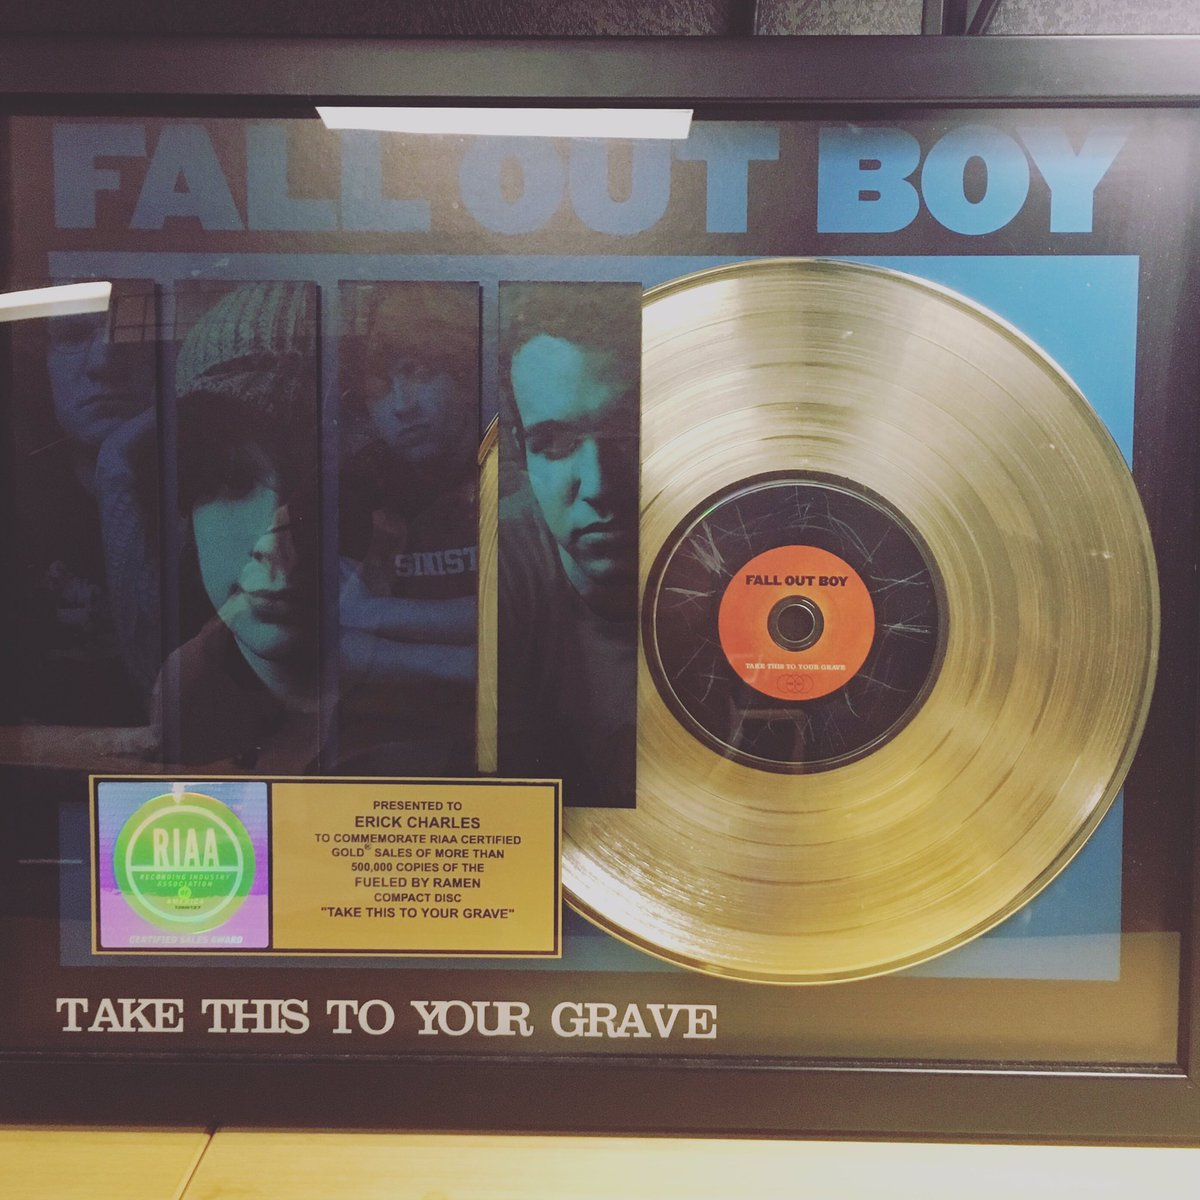 13 years ago today! @falloutboy https://t.co/SGLHfpM2HJ